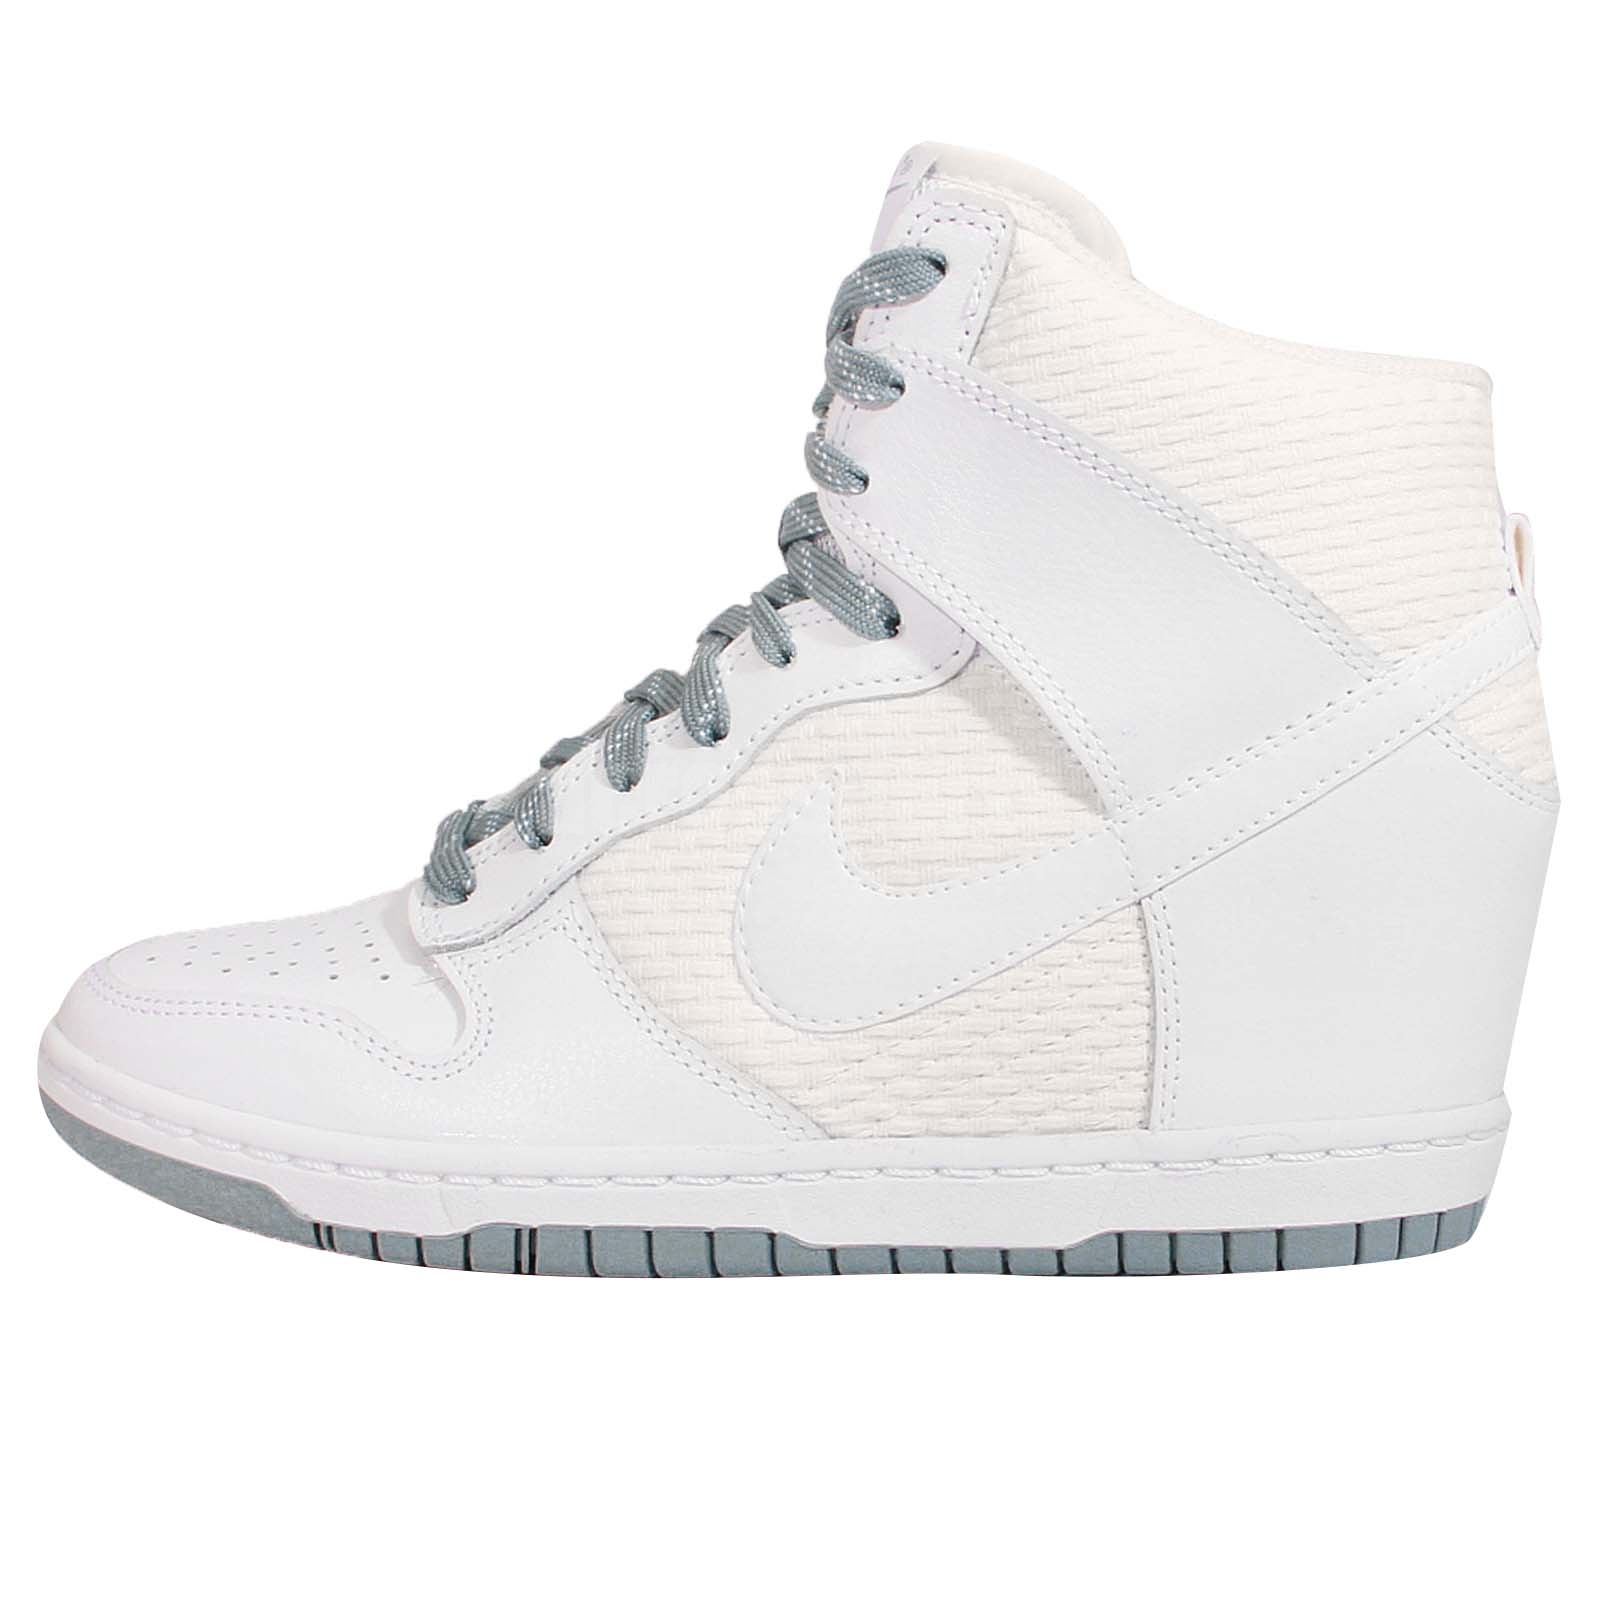 Nike Sky Hi Dunk Wedge Pale Grey Blue Color Shoes White Nike Shoes ... dc2e72c2b